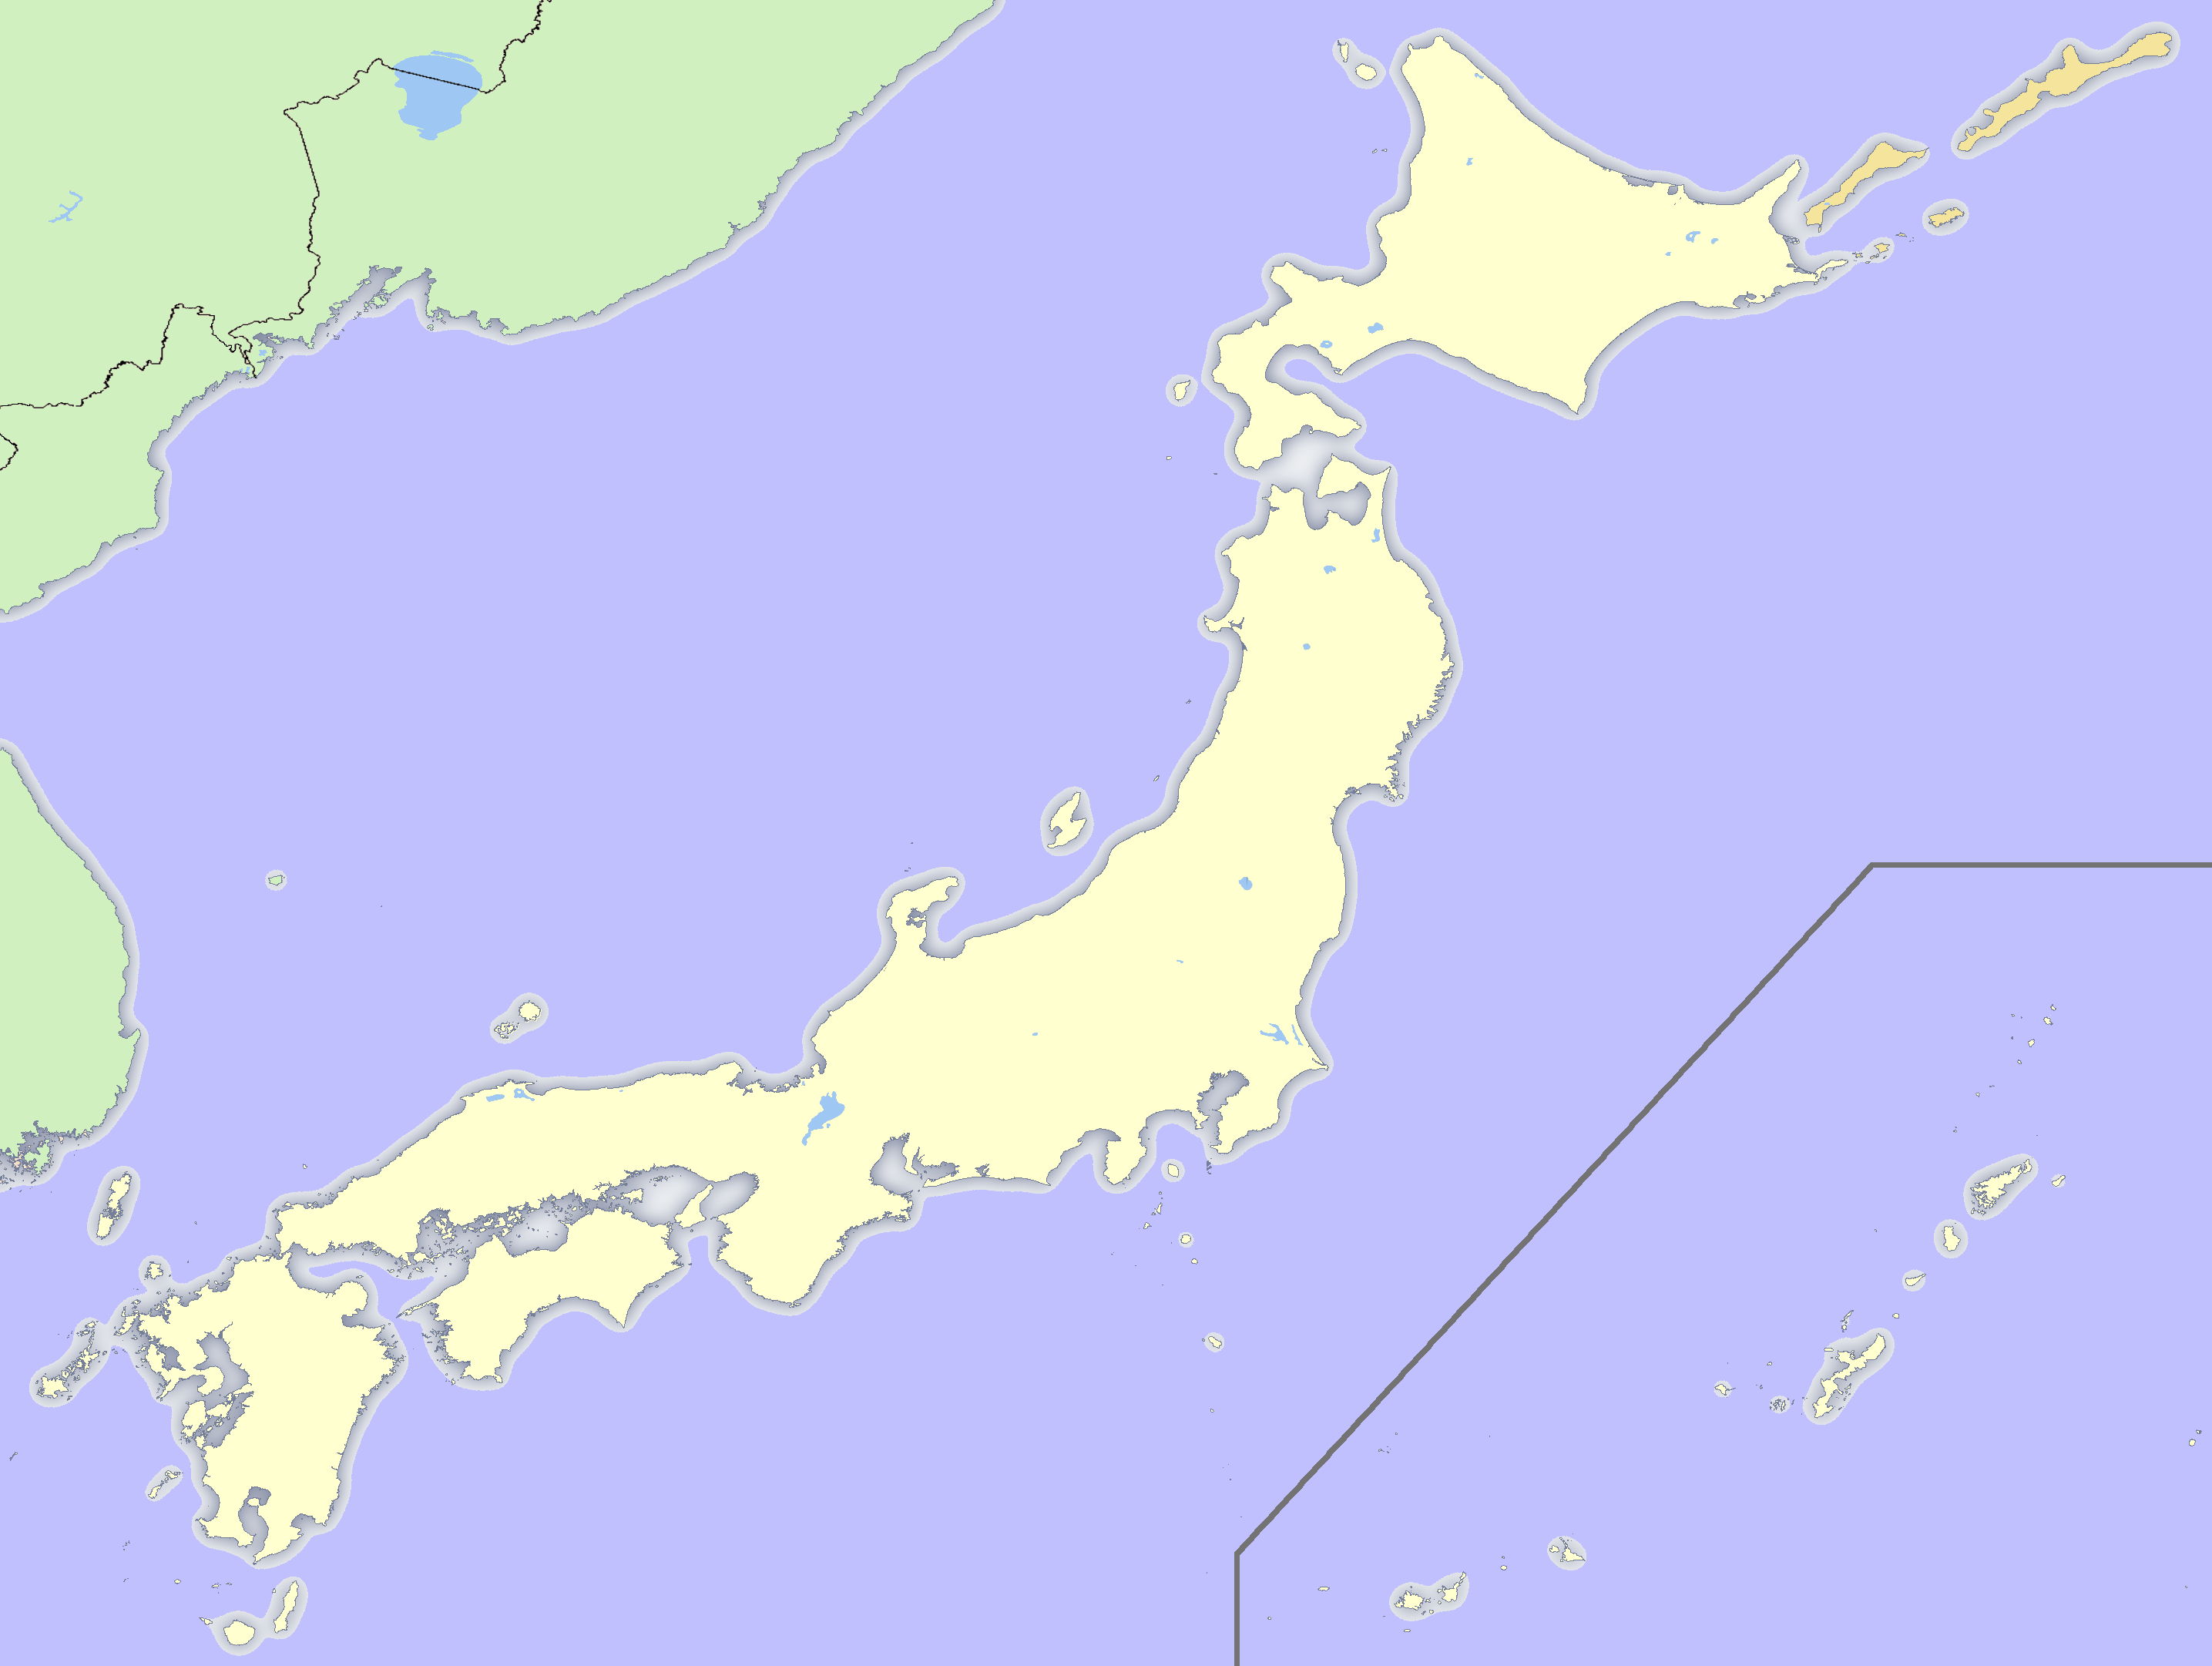 FileLocation Map Japanpng Wikimedia Commons - Japan map 6